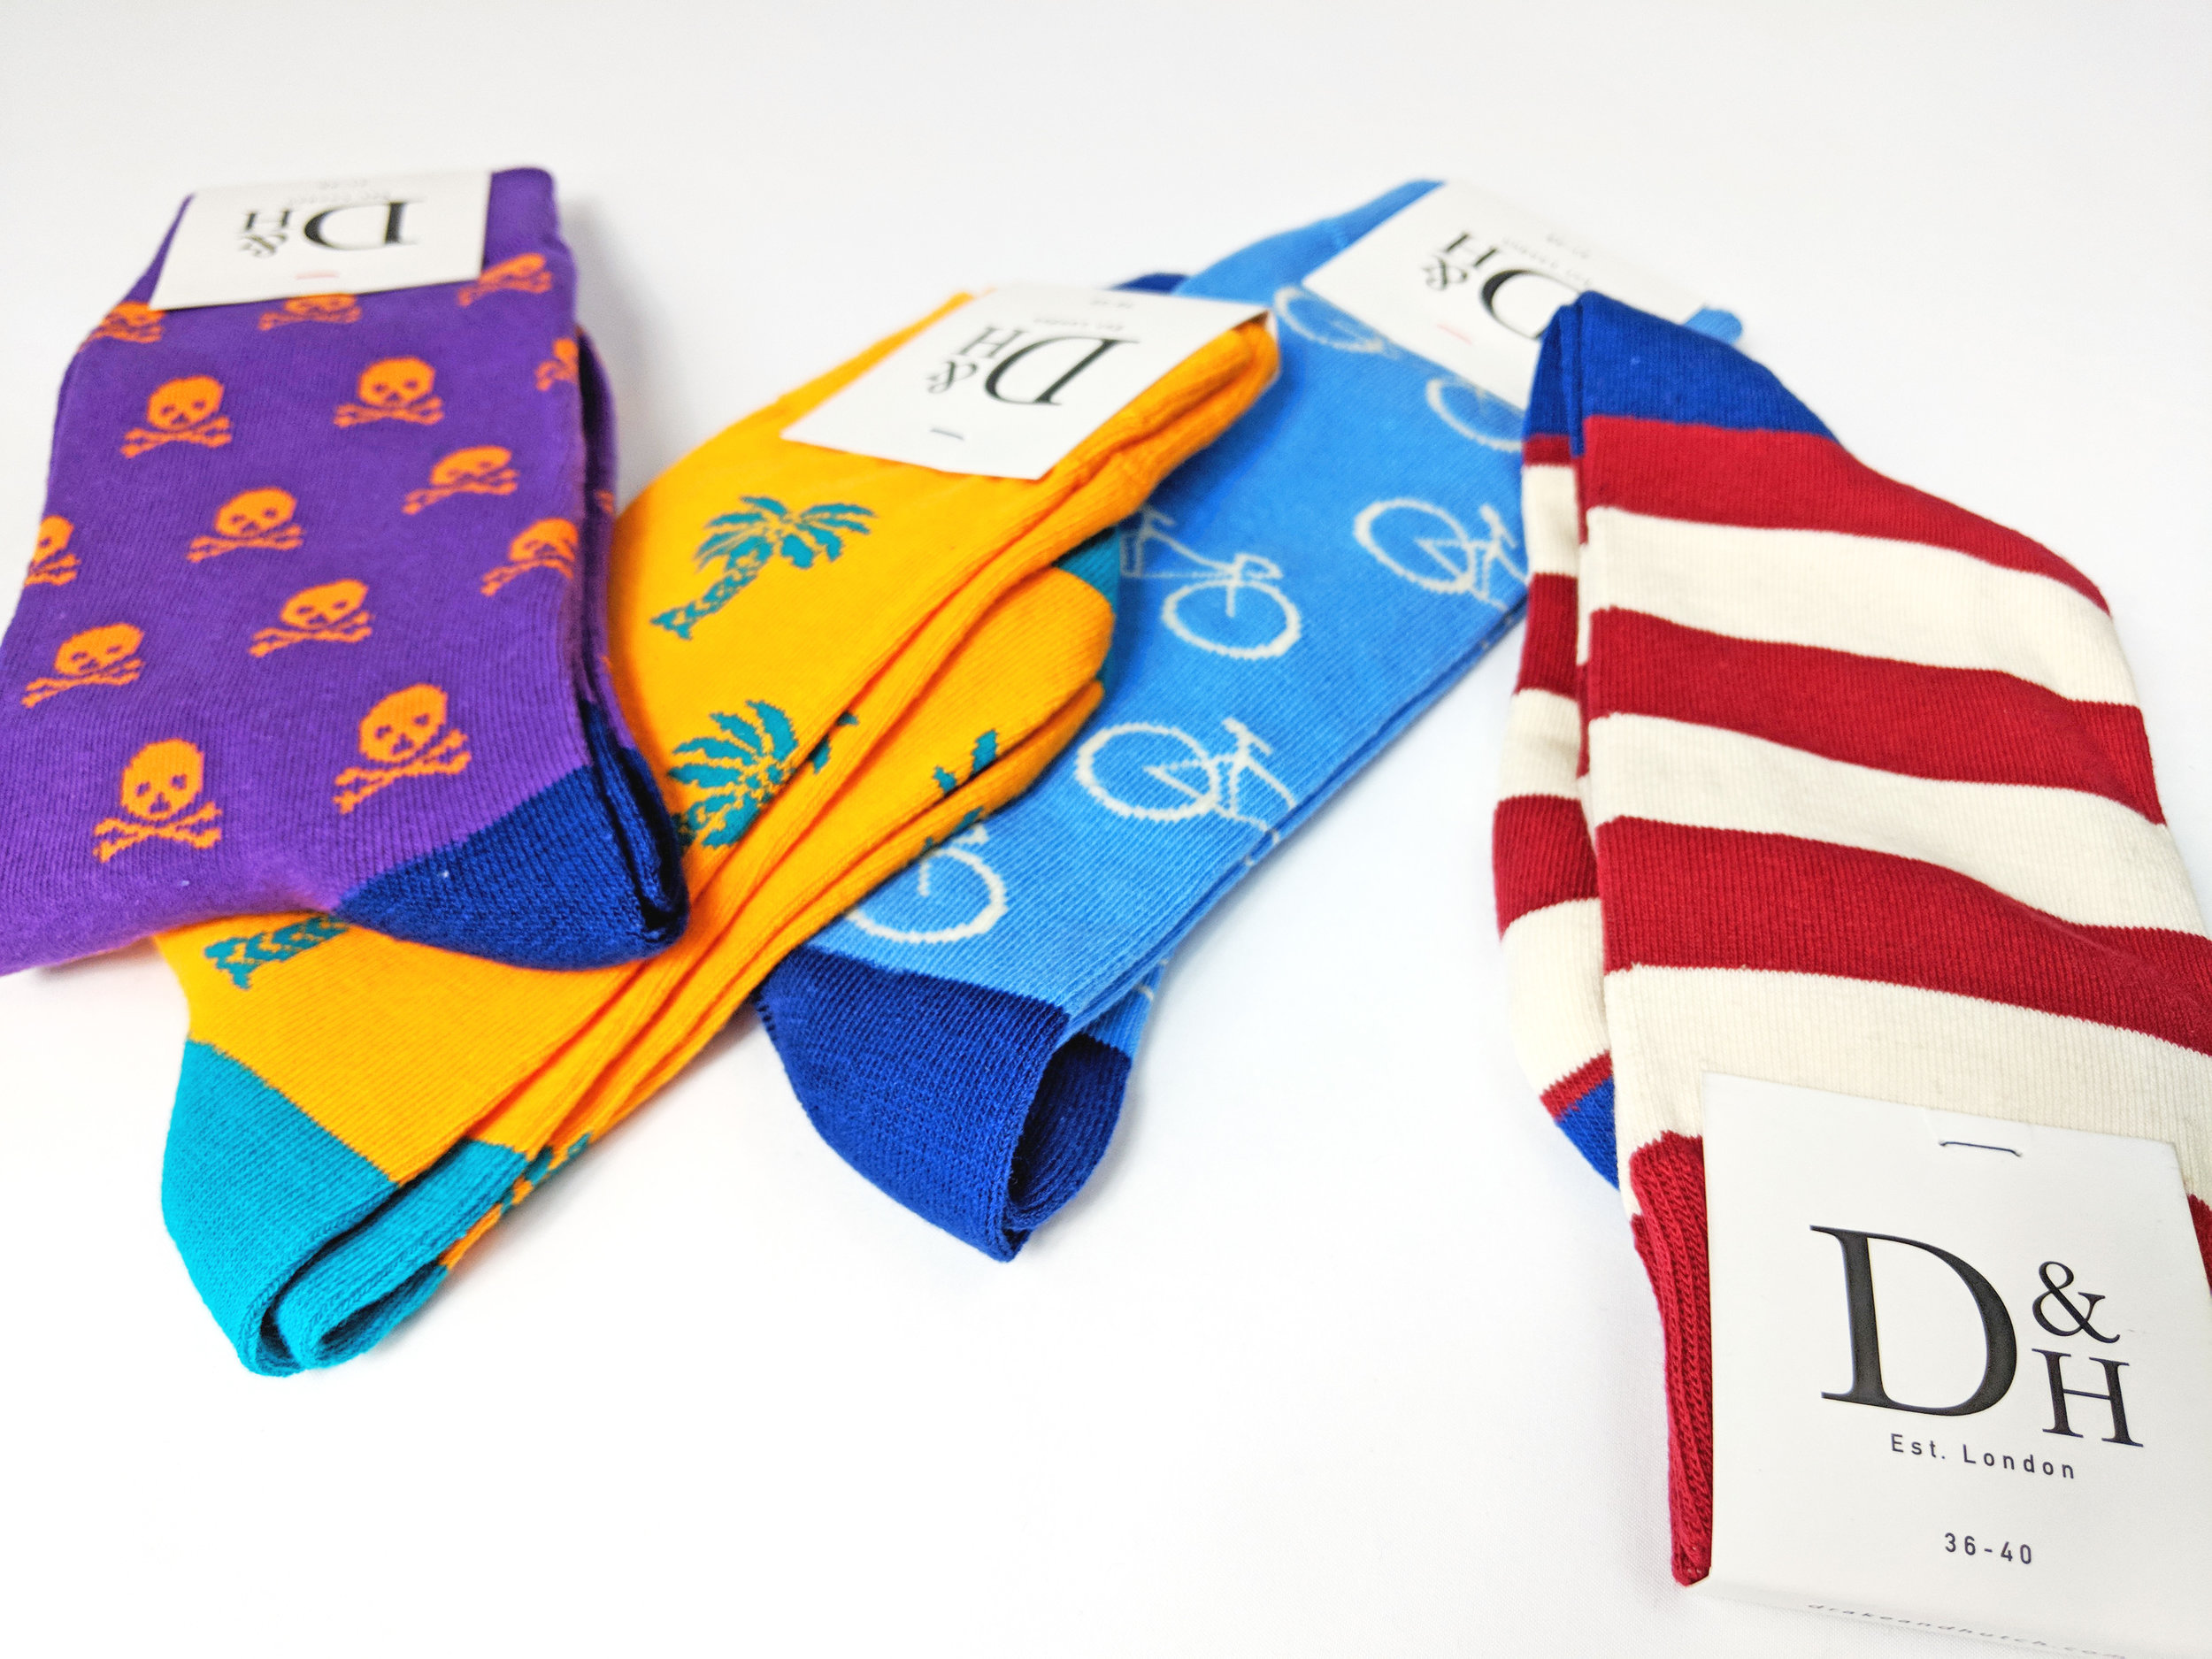 Some of D&H's fun, bright & conversational crew socks. Men's & Women's sizes available. Photo credit: The Sock Review